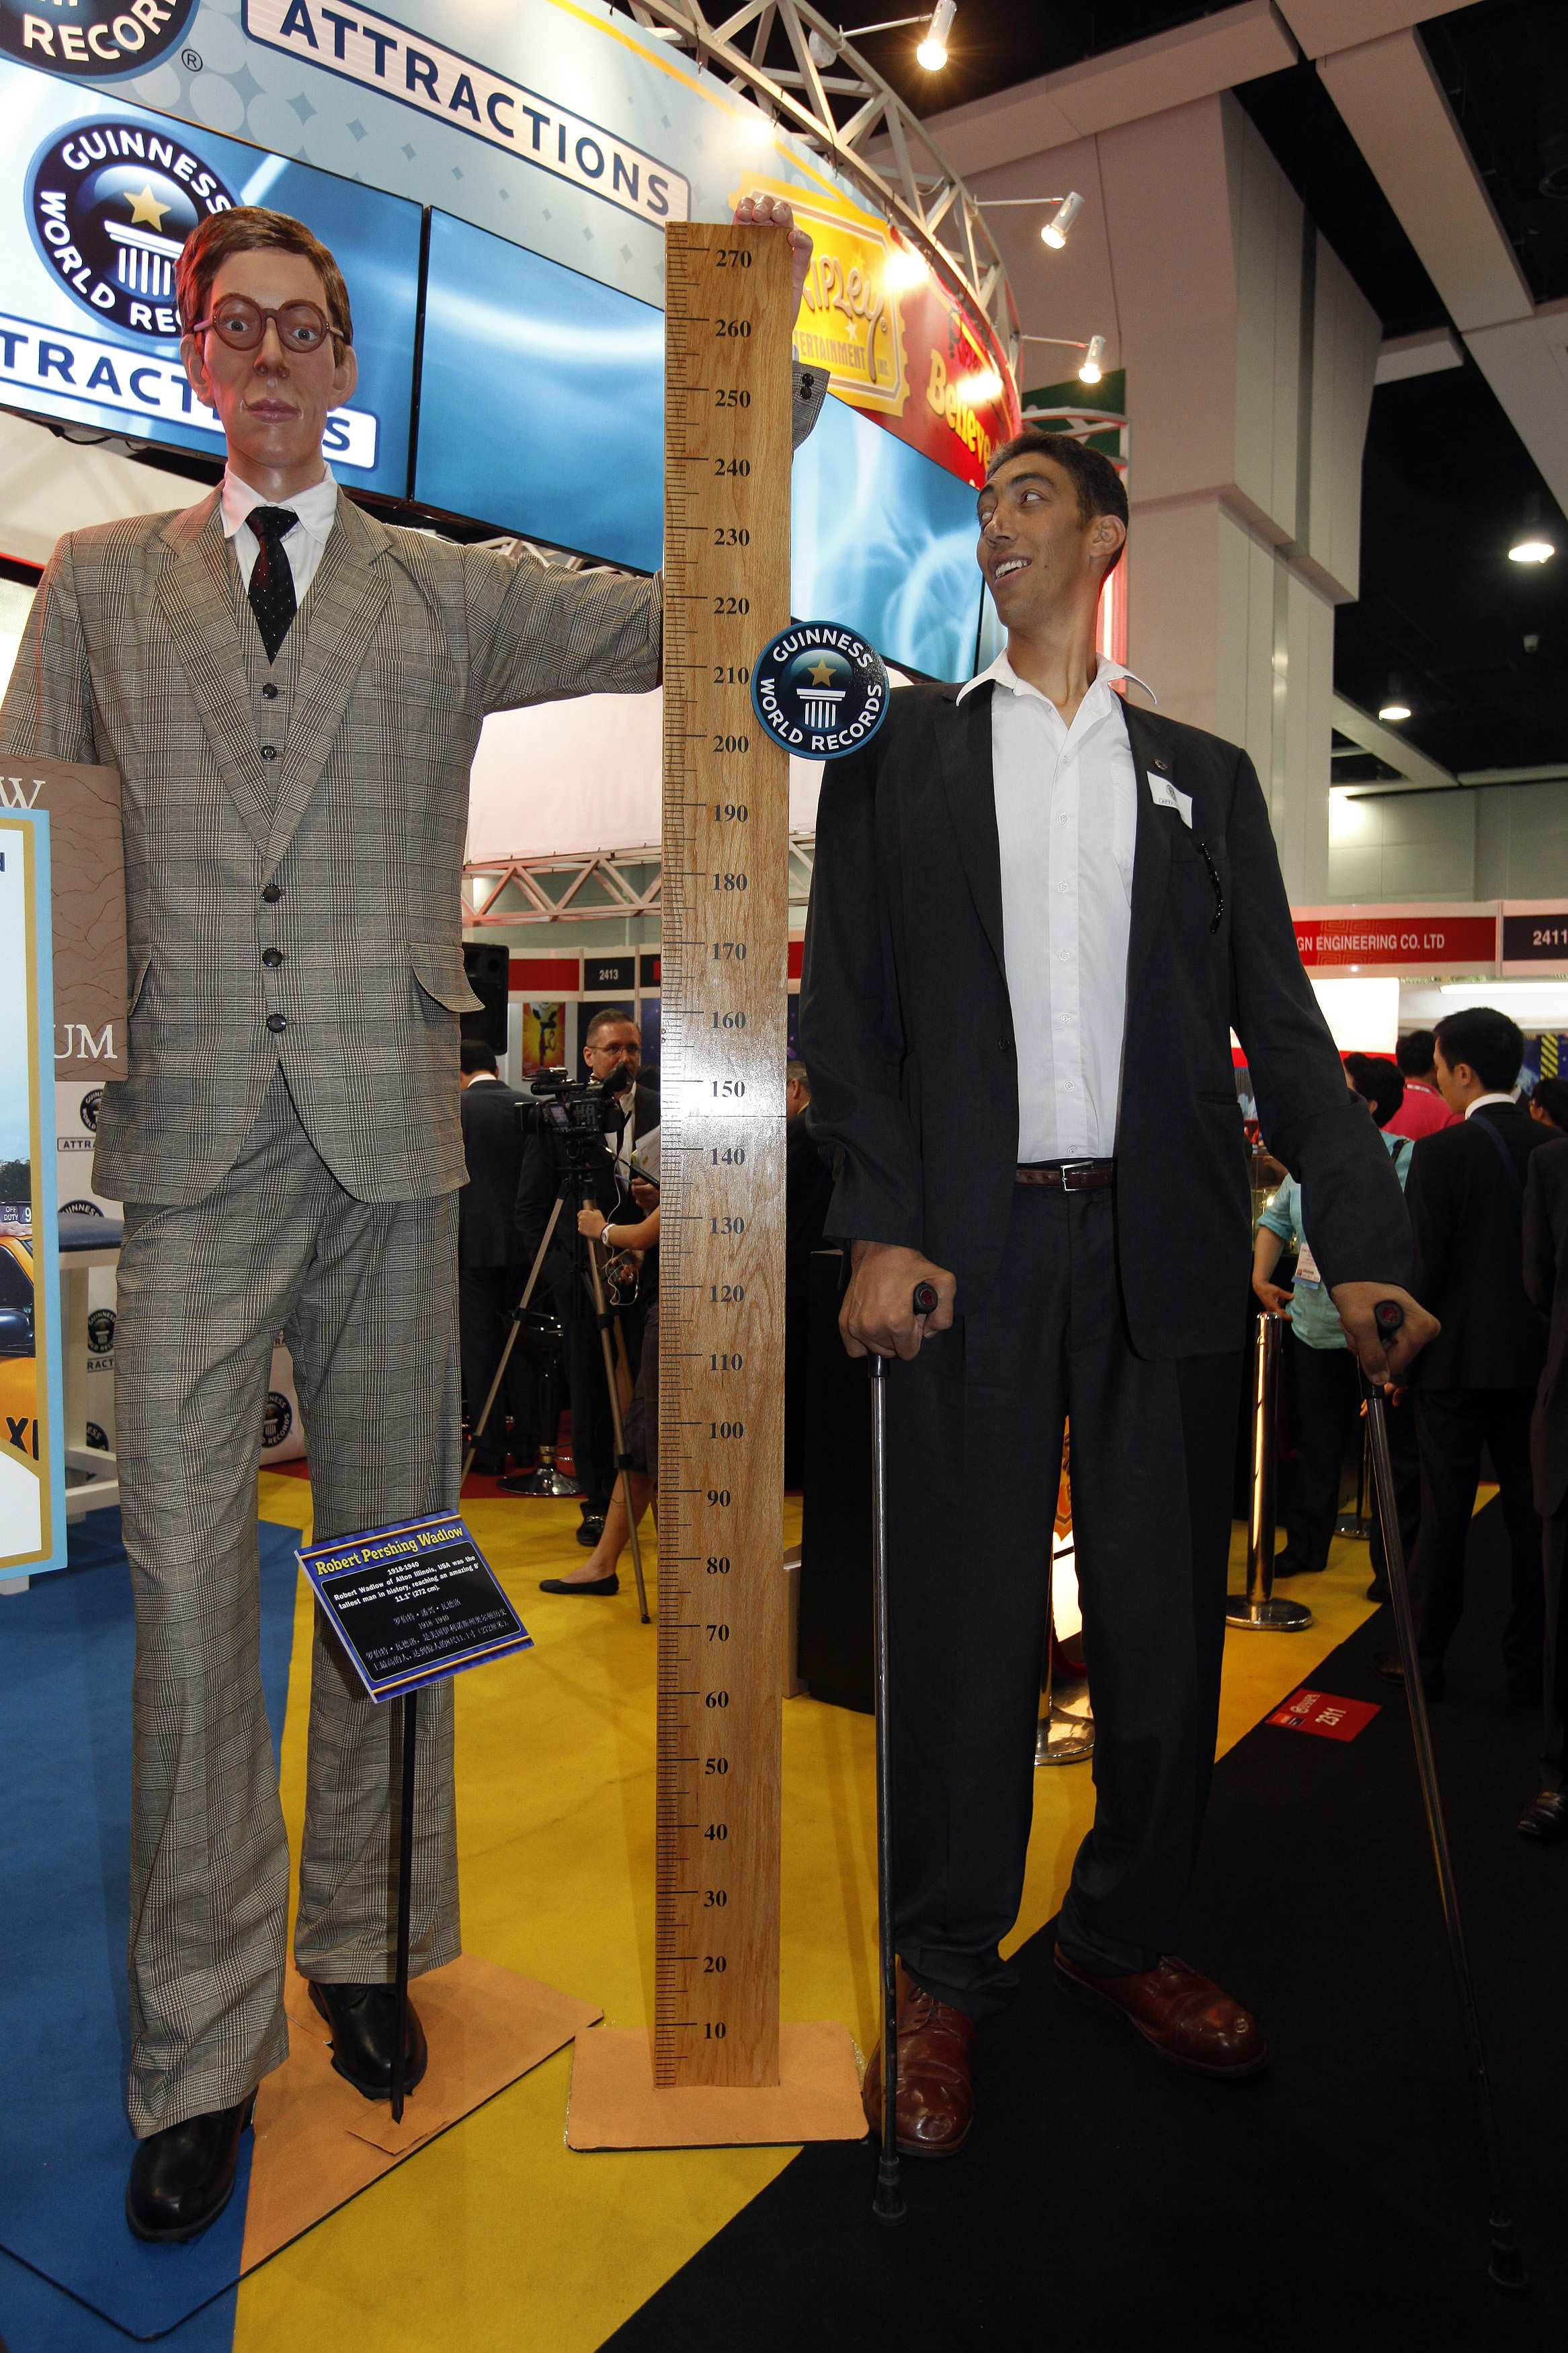 Two Tallest Men In The World Standing Next To A 60 Tall Guy Tall